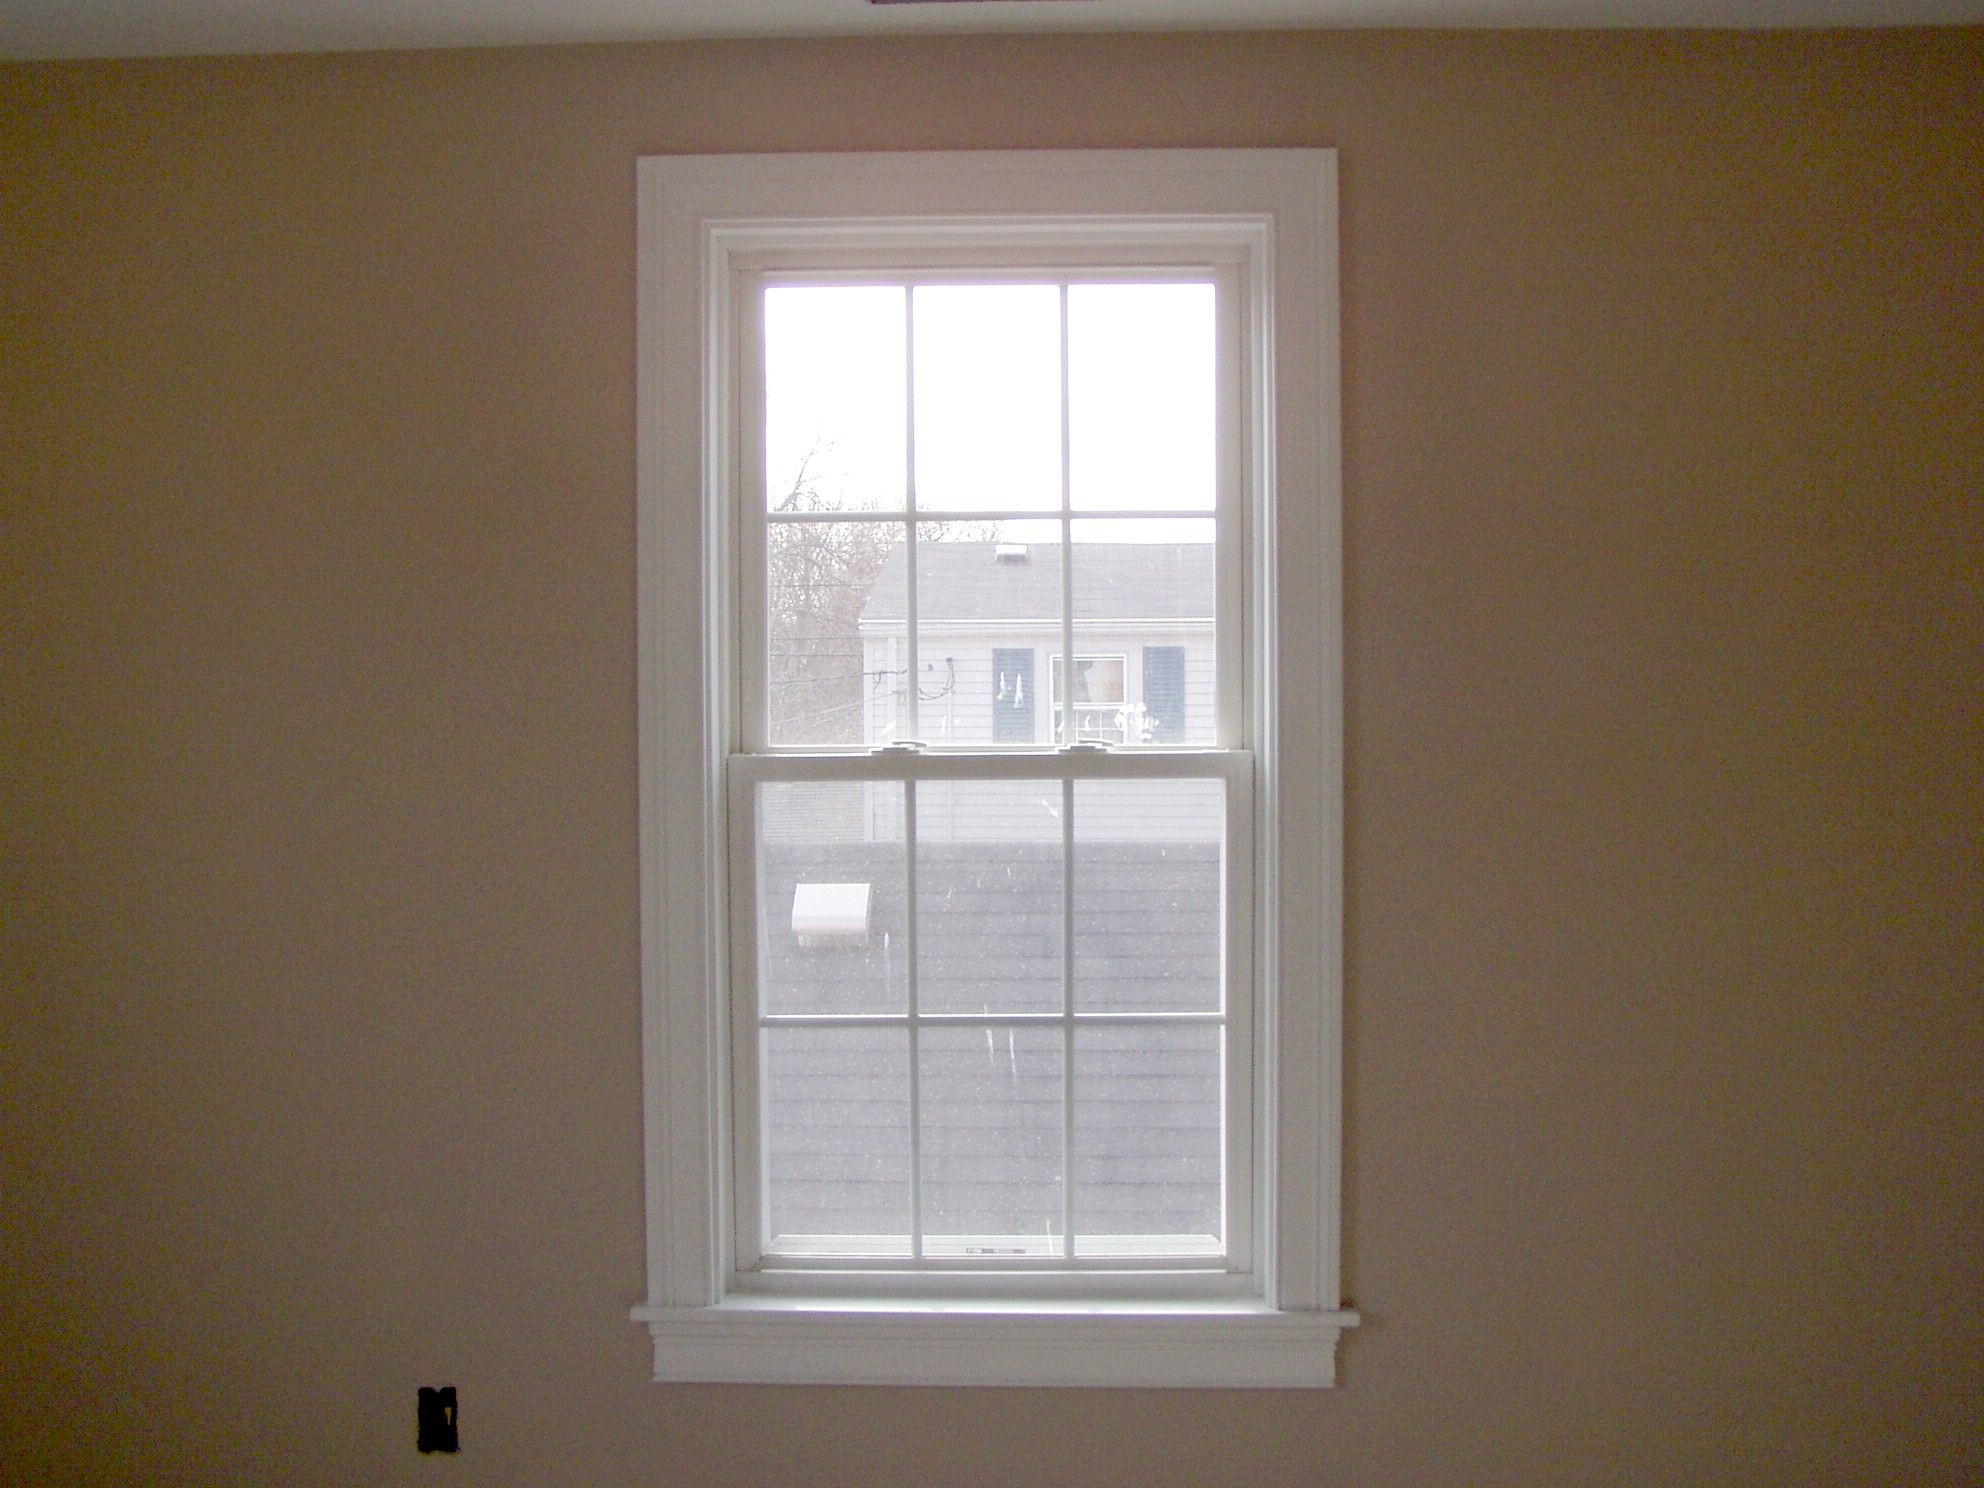 New construction door trim paint and window trim master for How to paint wood windows interior